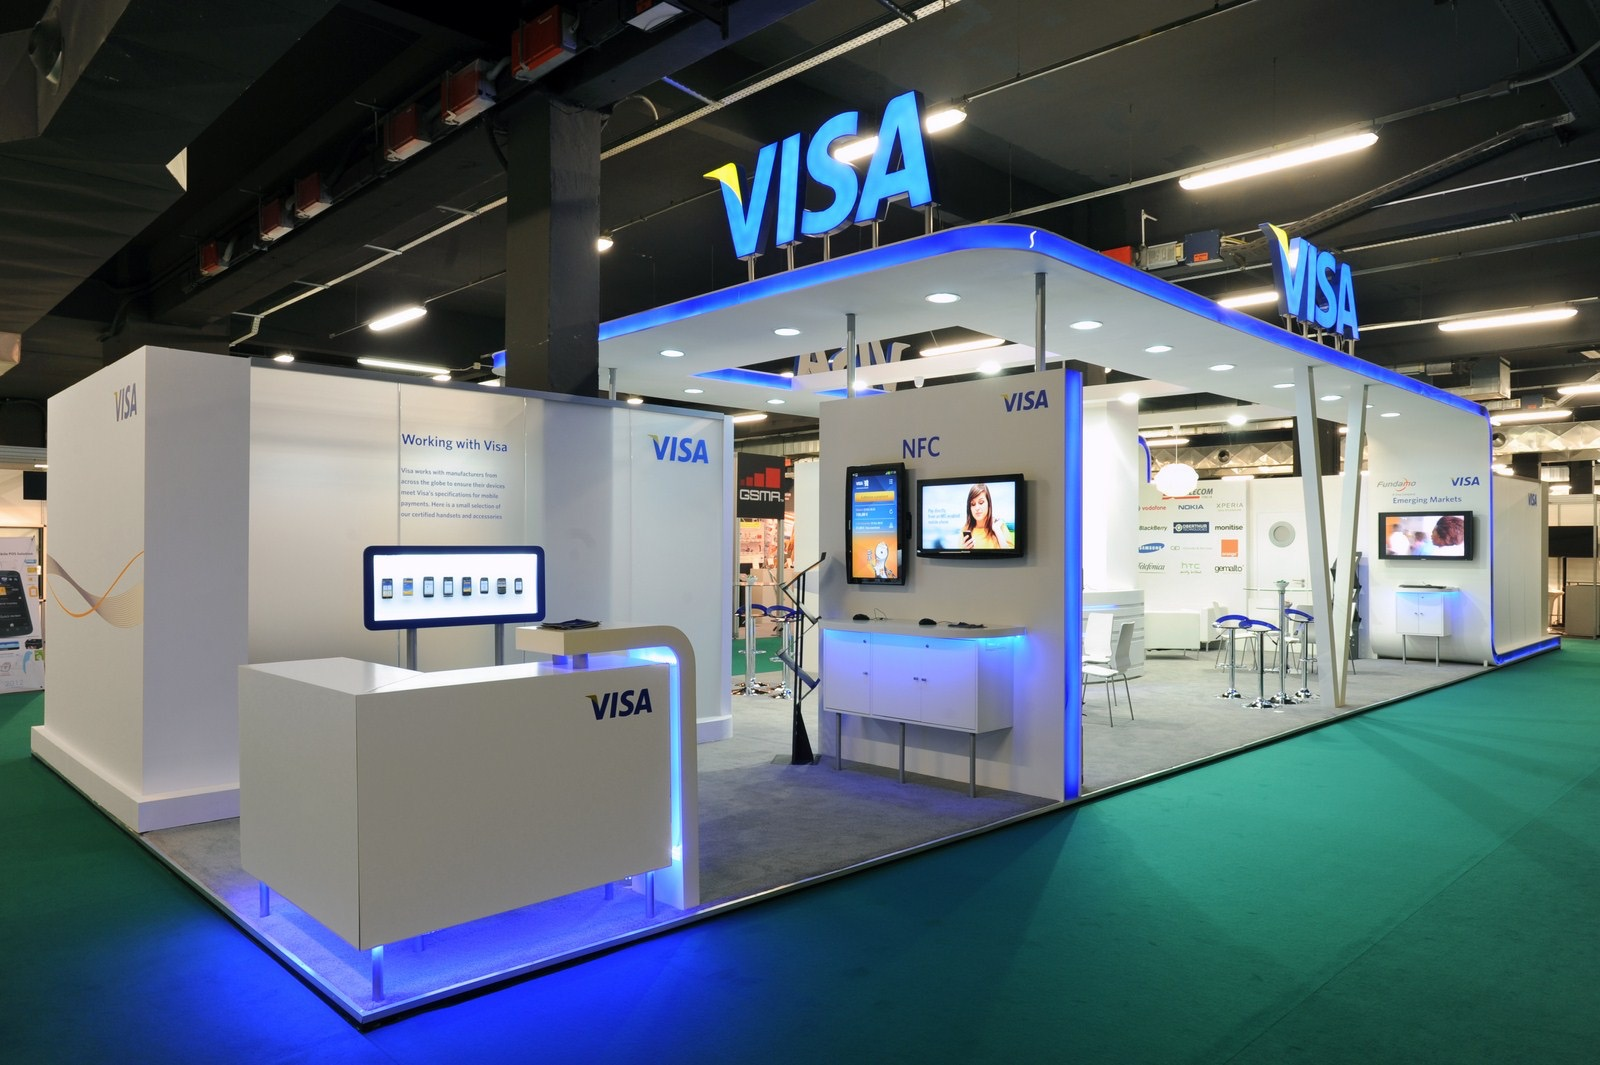 Excellent Exhibition Stand Design : The ice agency exhibition stand design and management